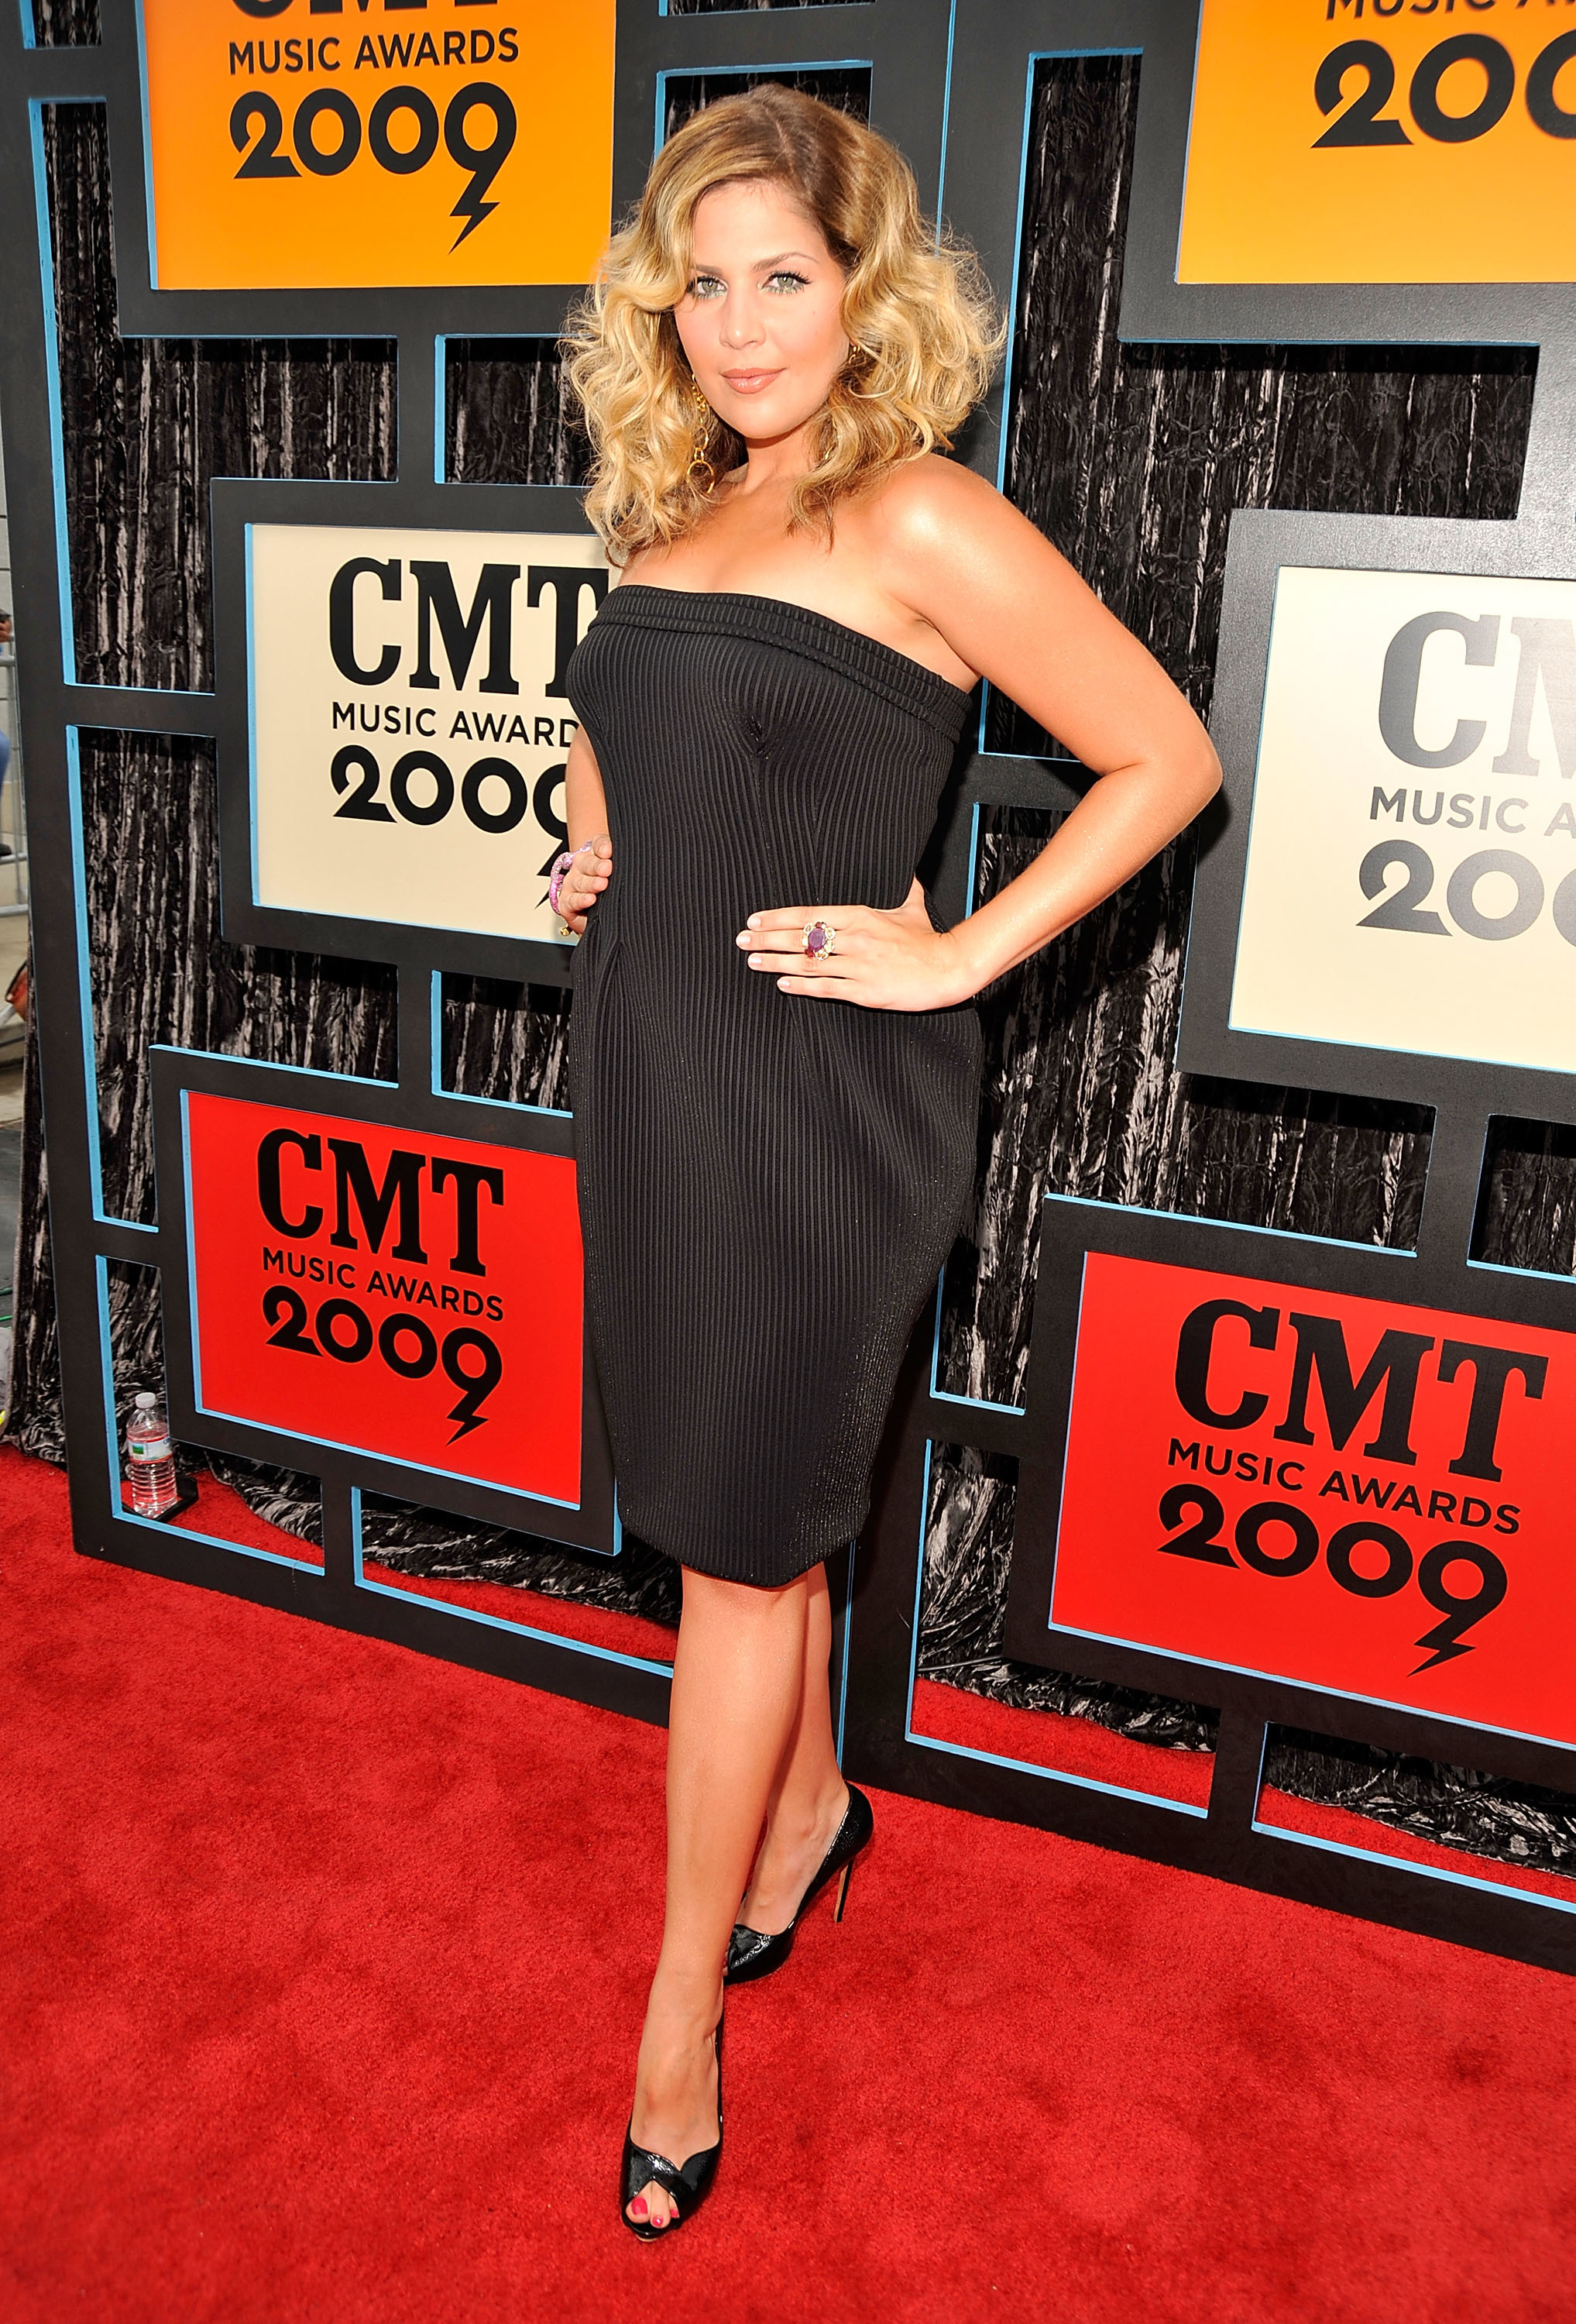 Hillary Scott attends the CMT Music Awards at the Sommet Center in Nashville, Tennessee, on June 16, 2009.